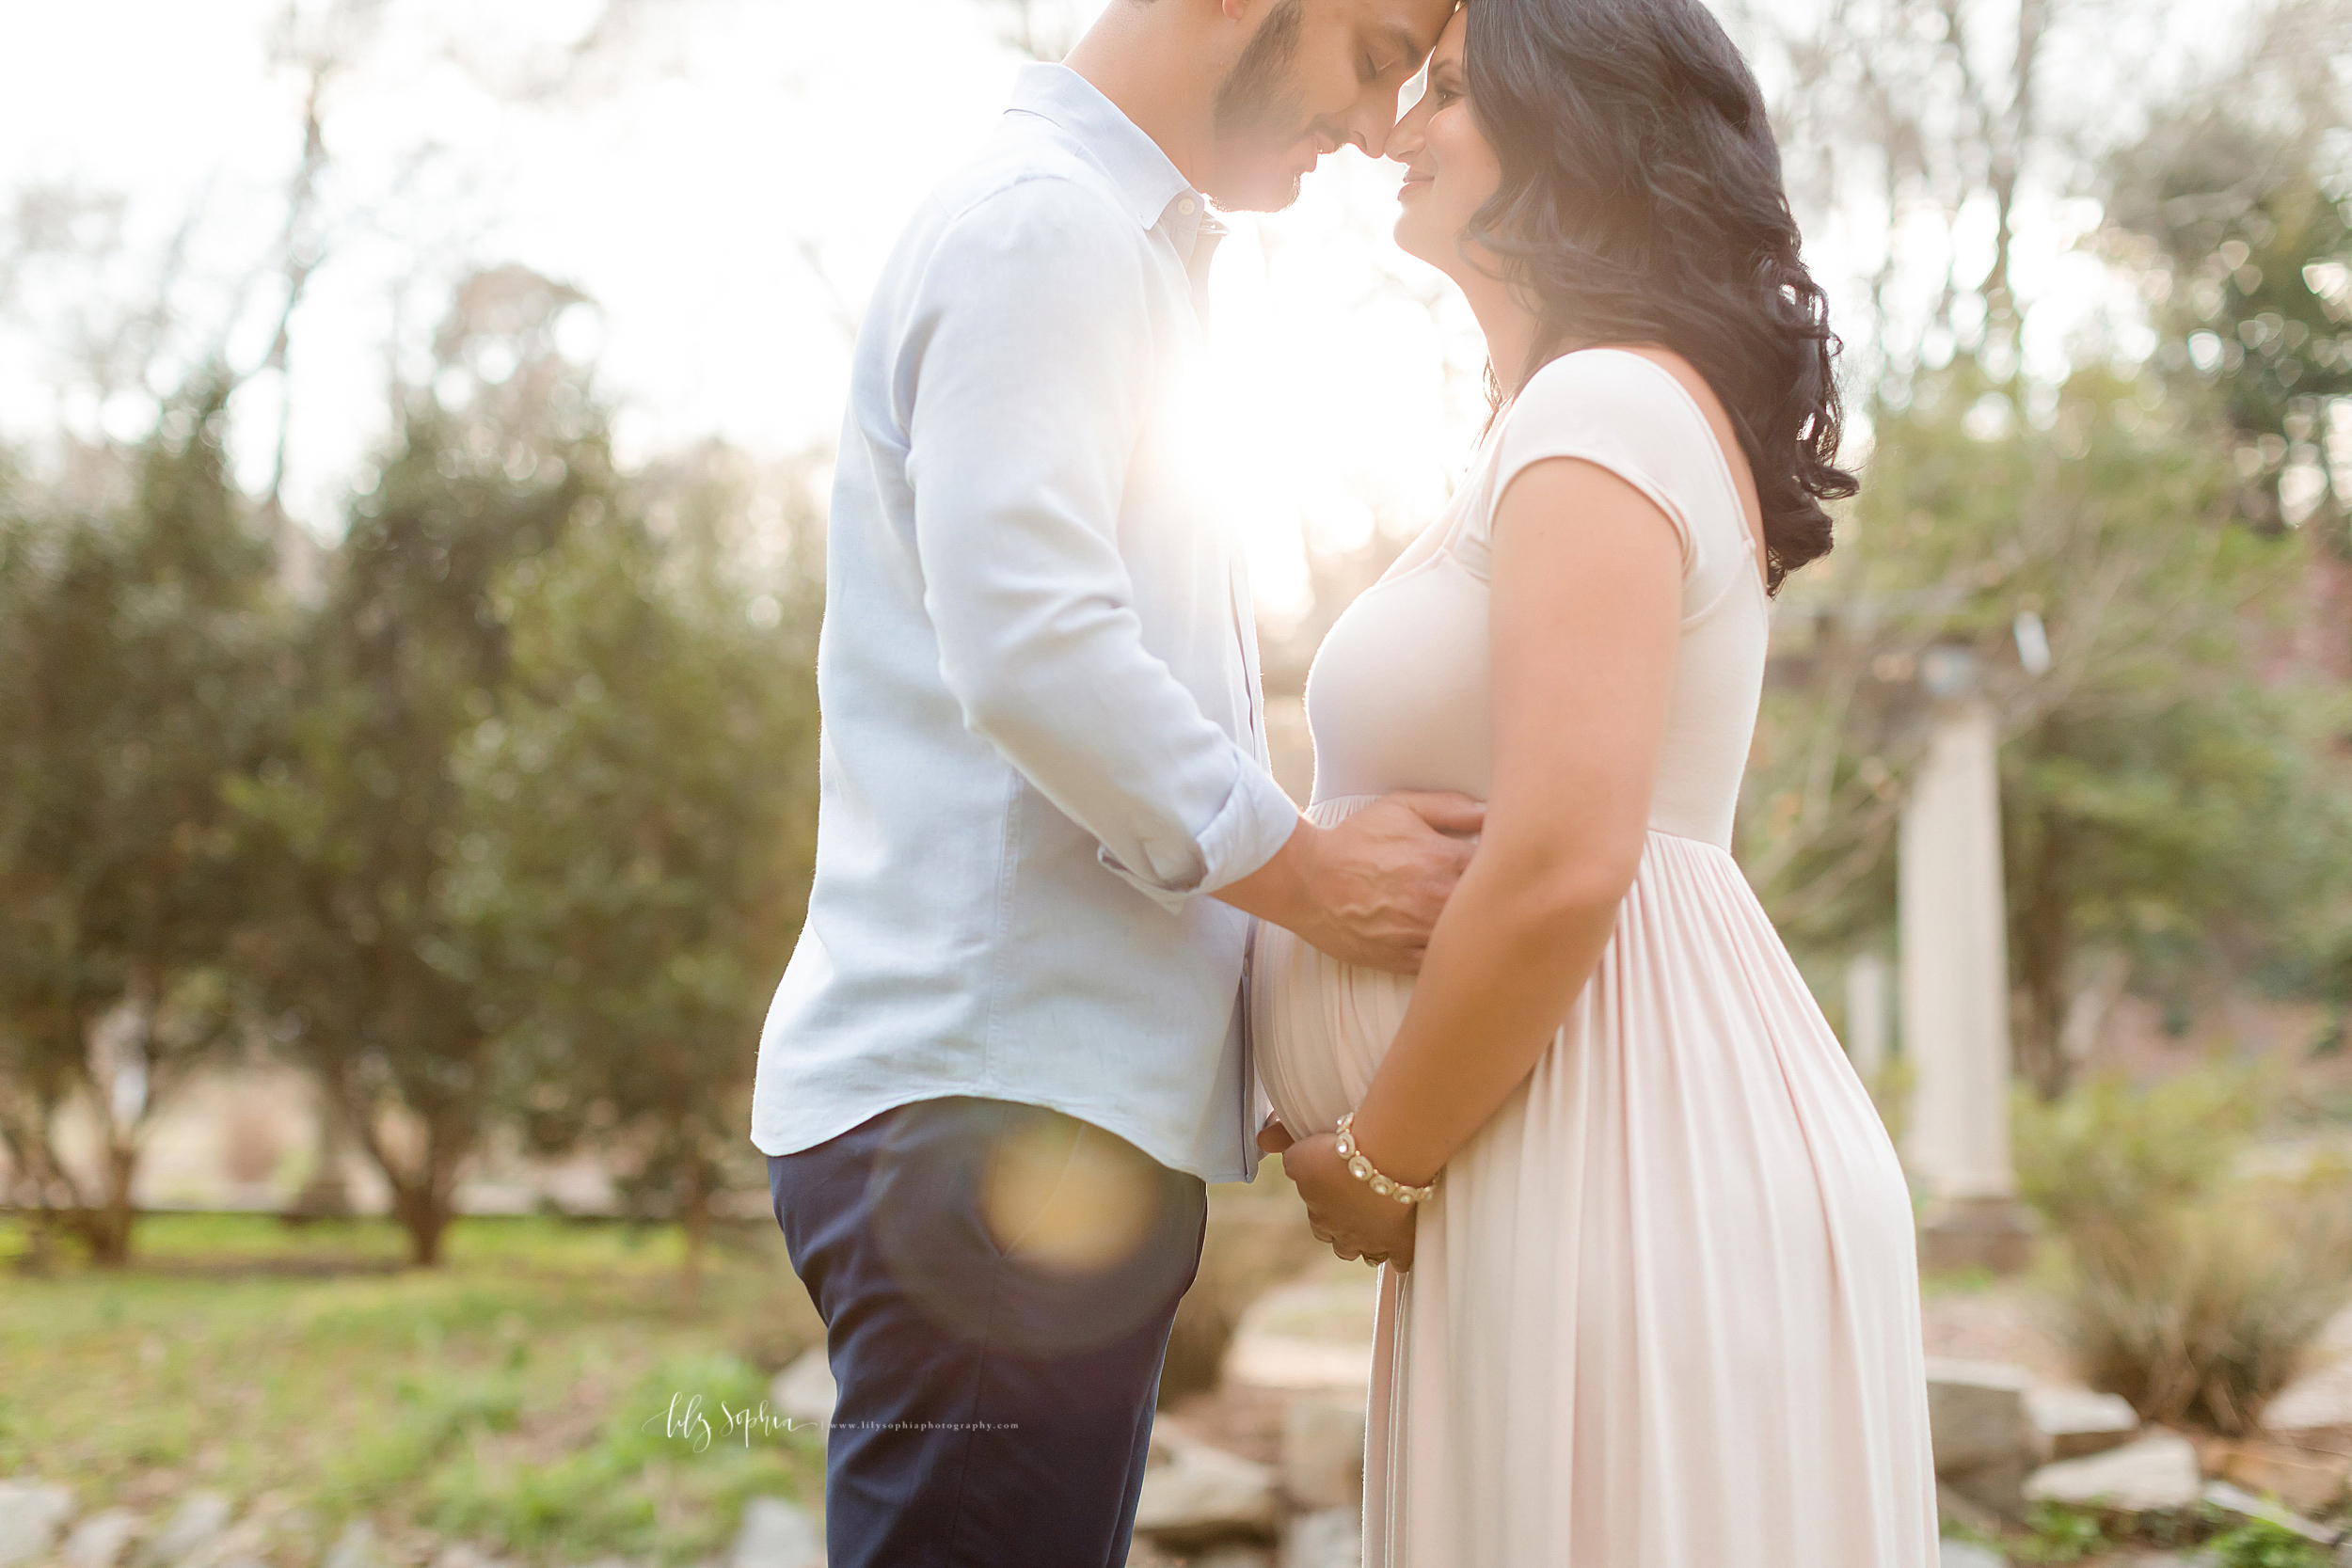 atlanta-midtown-virginia-highlands-roswell-decatur-lily-sophia-photography-maternity-sunset-session-gardens_0495.jpg